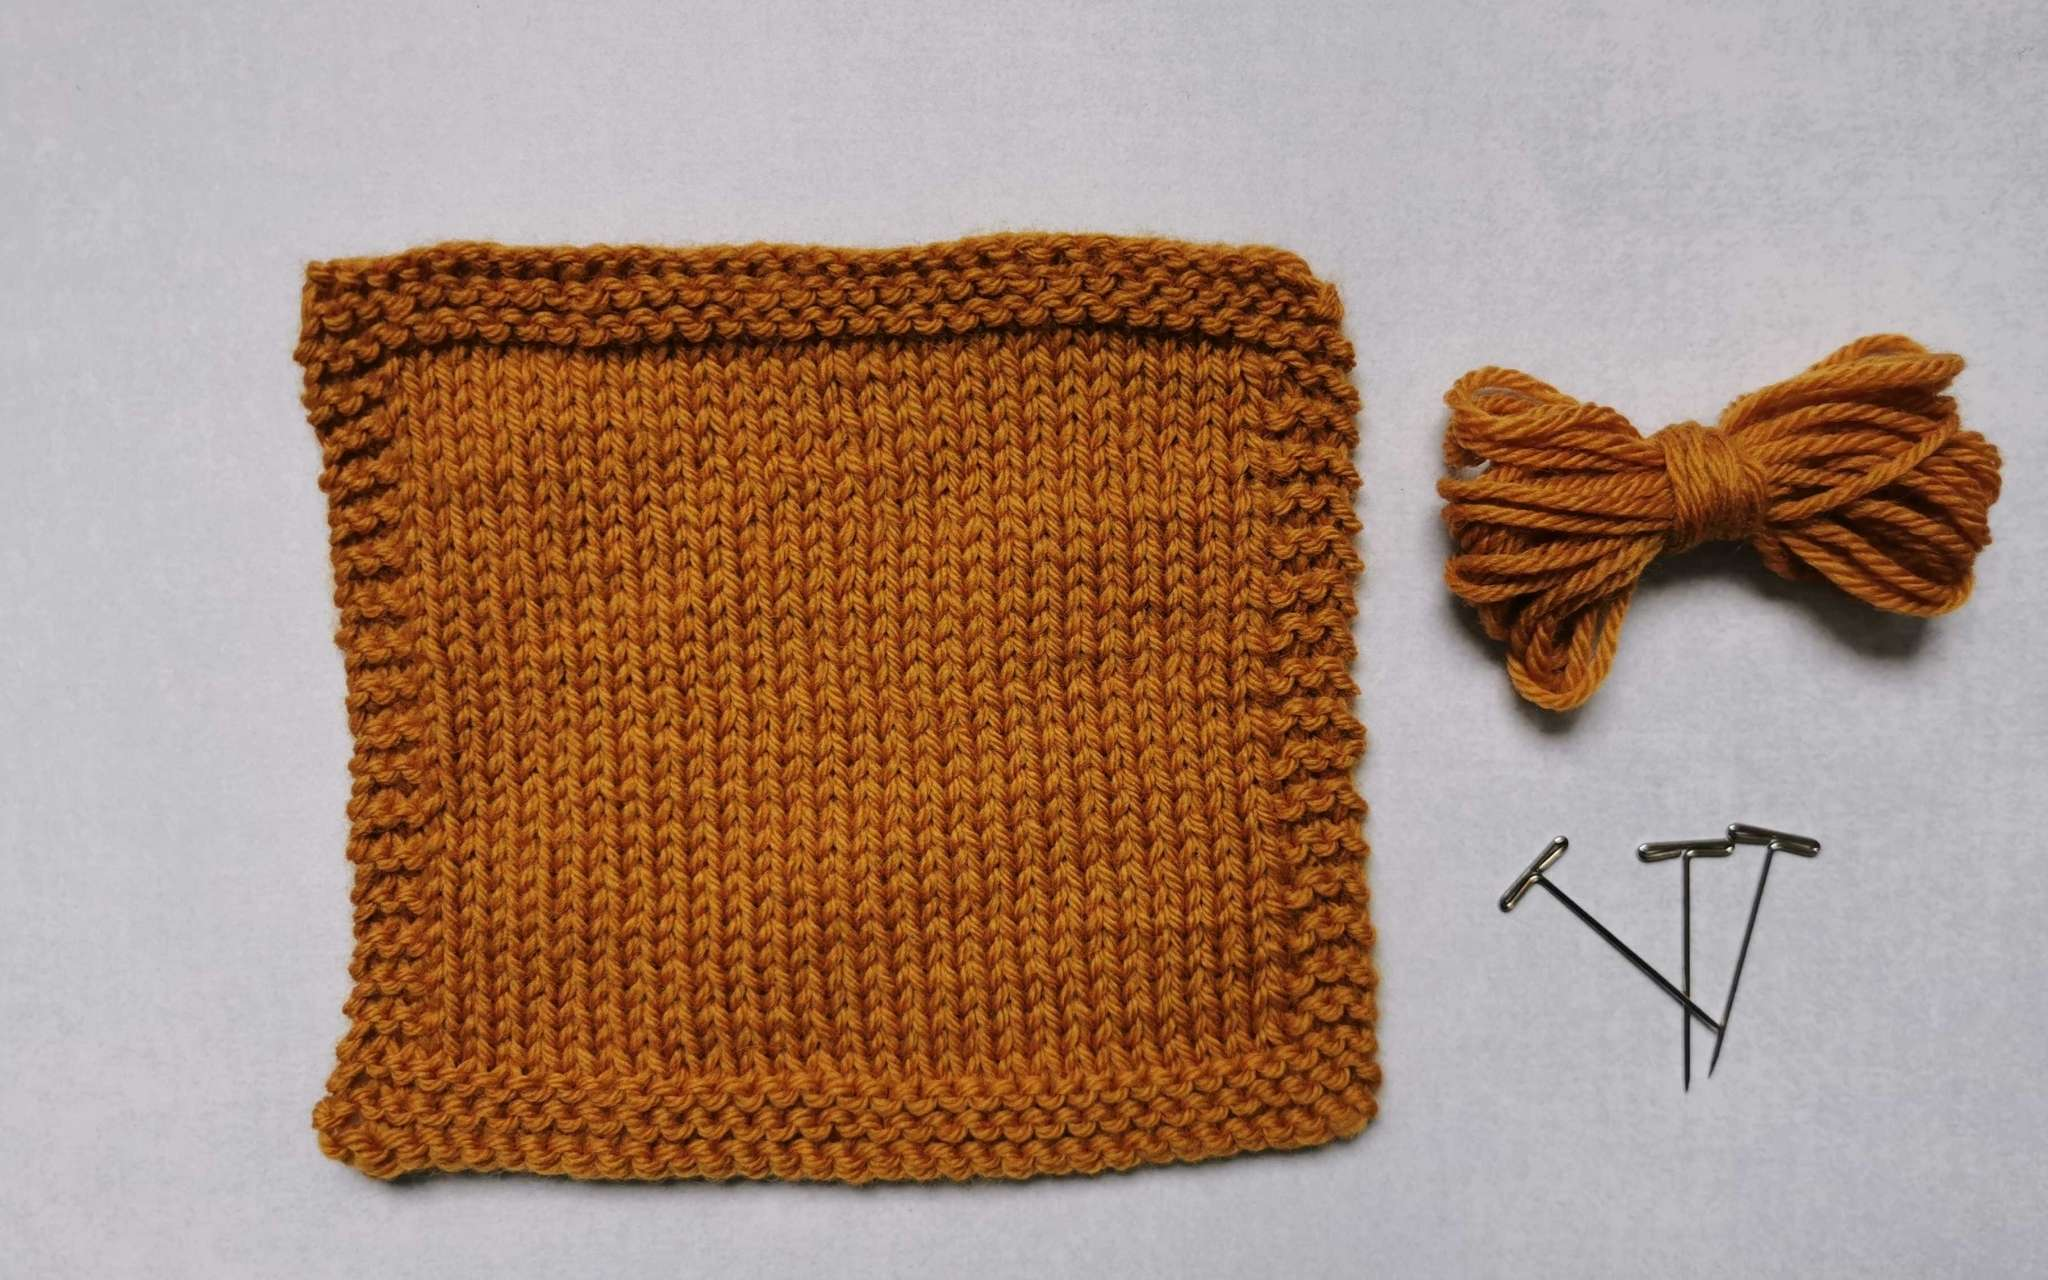 A square swatch of stocking stitch in golden yellow, with some bundled up spare yarn and t-pins laying beside it to the right.